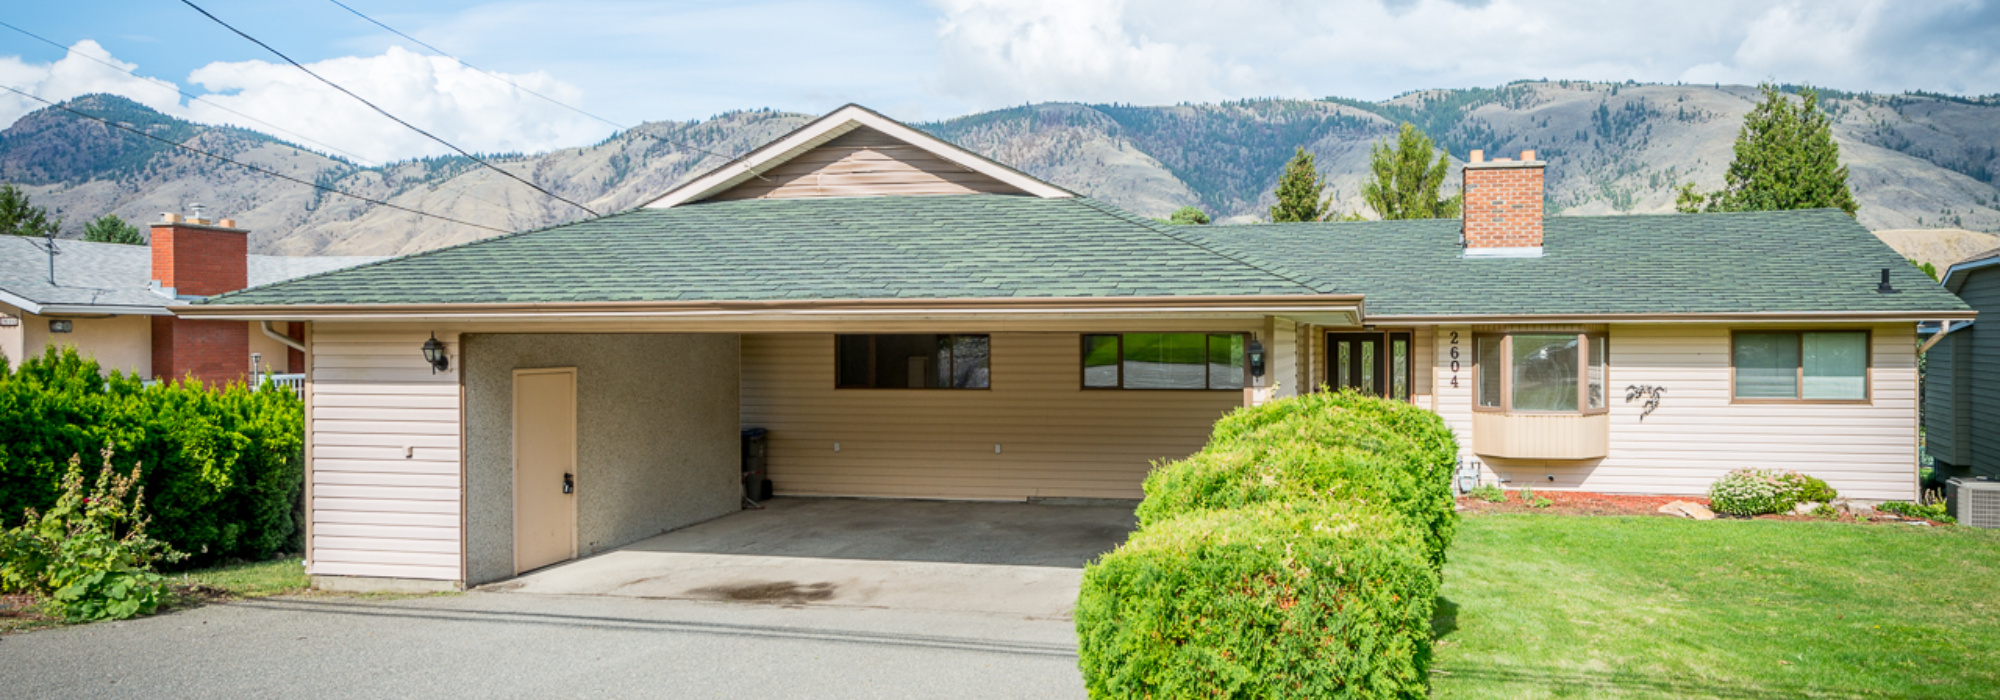 Well Cared for Valleyview Home – 2604 Valleyview Drive